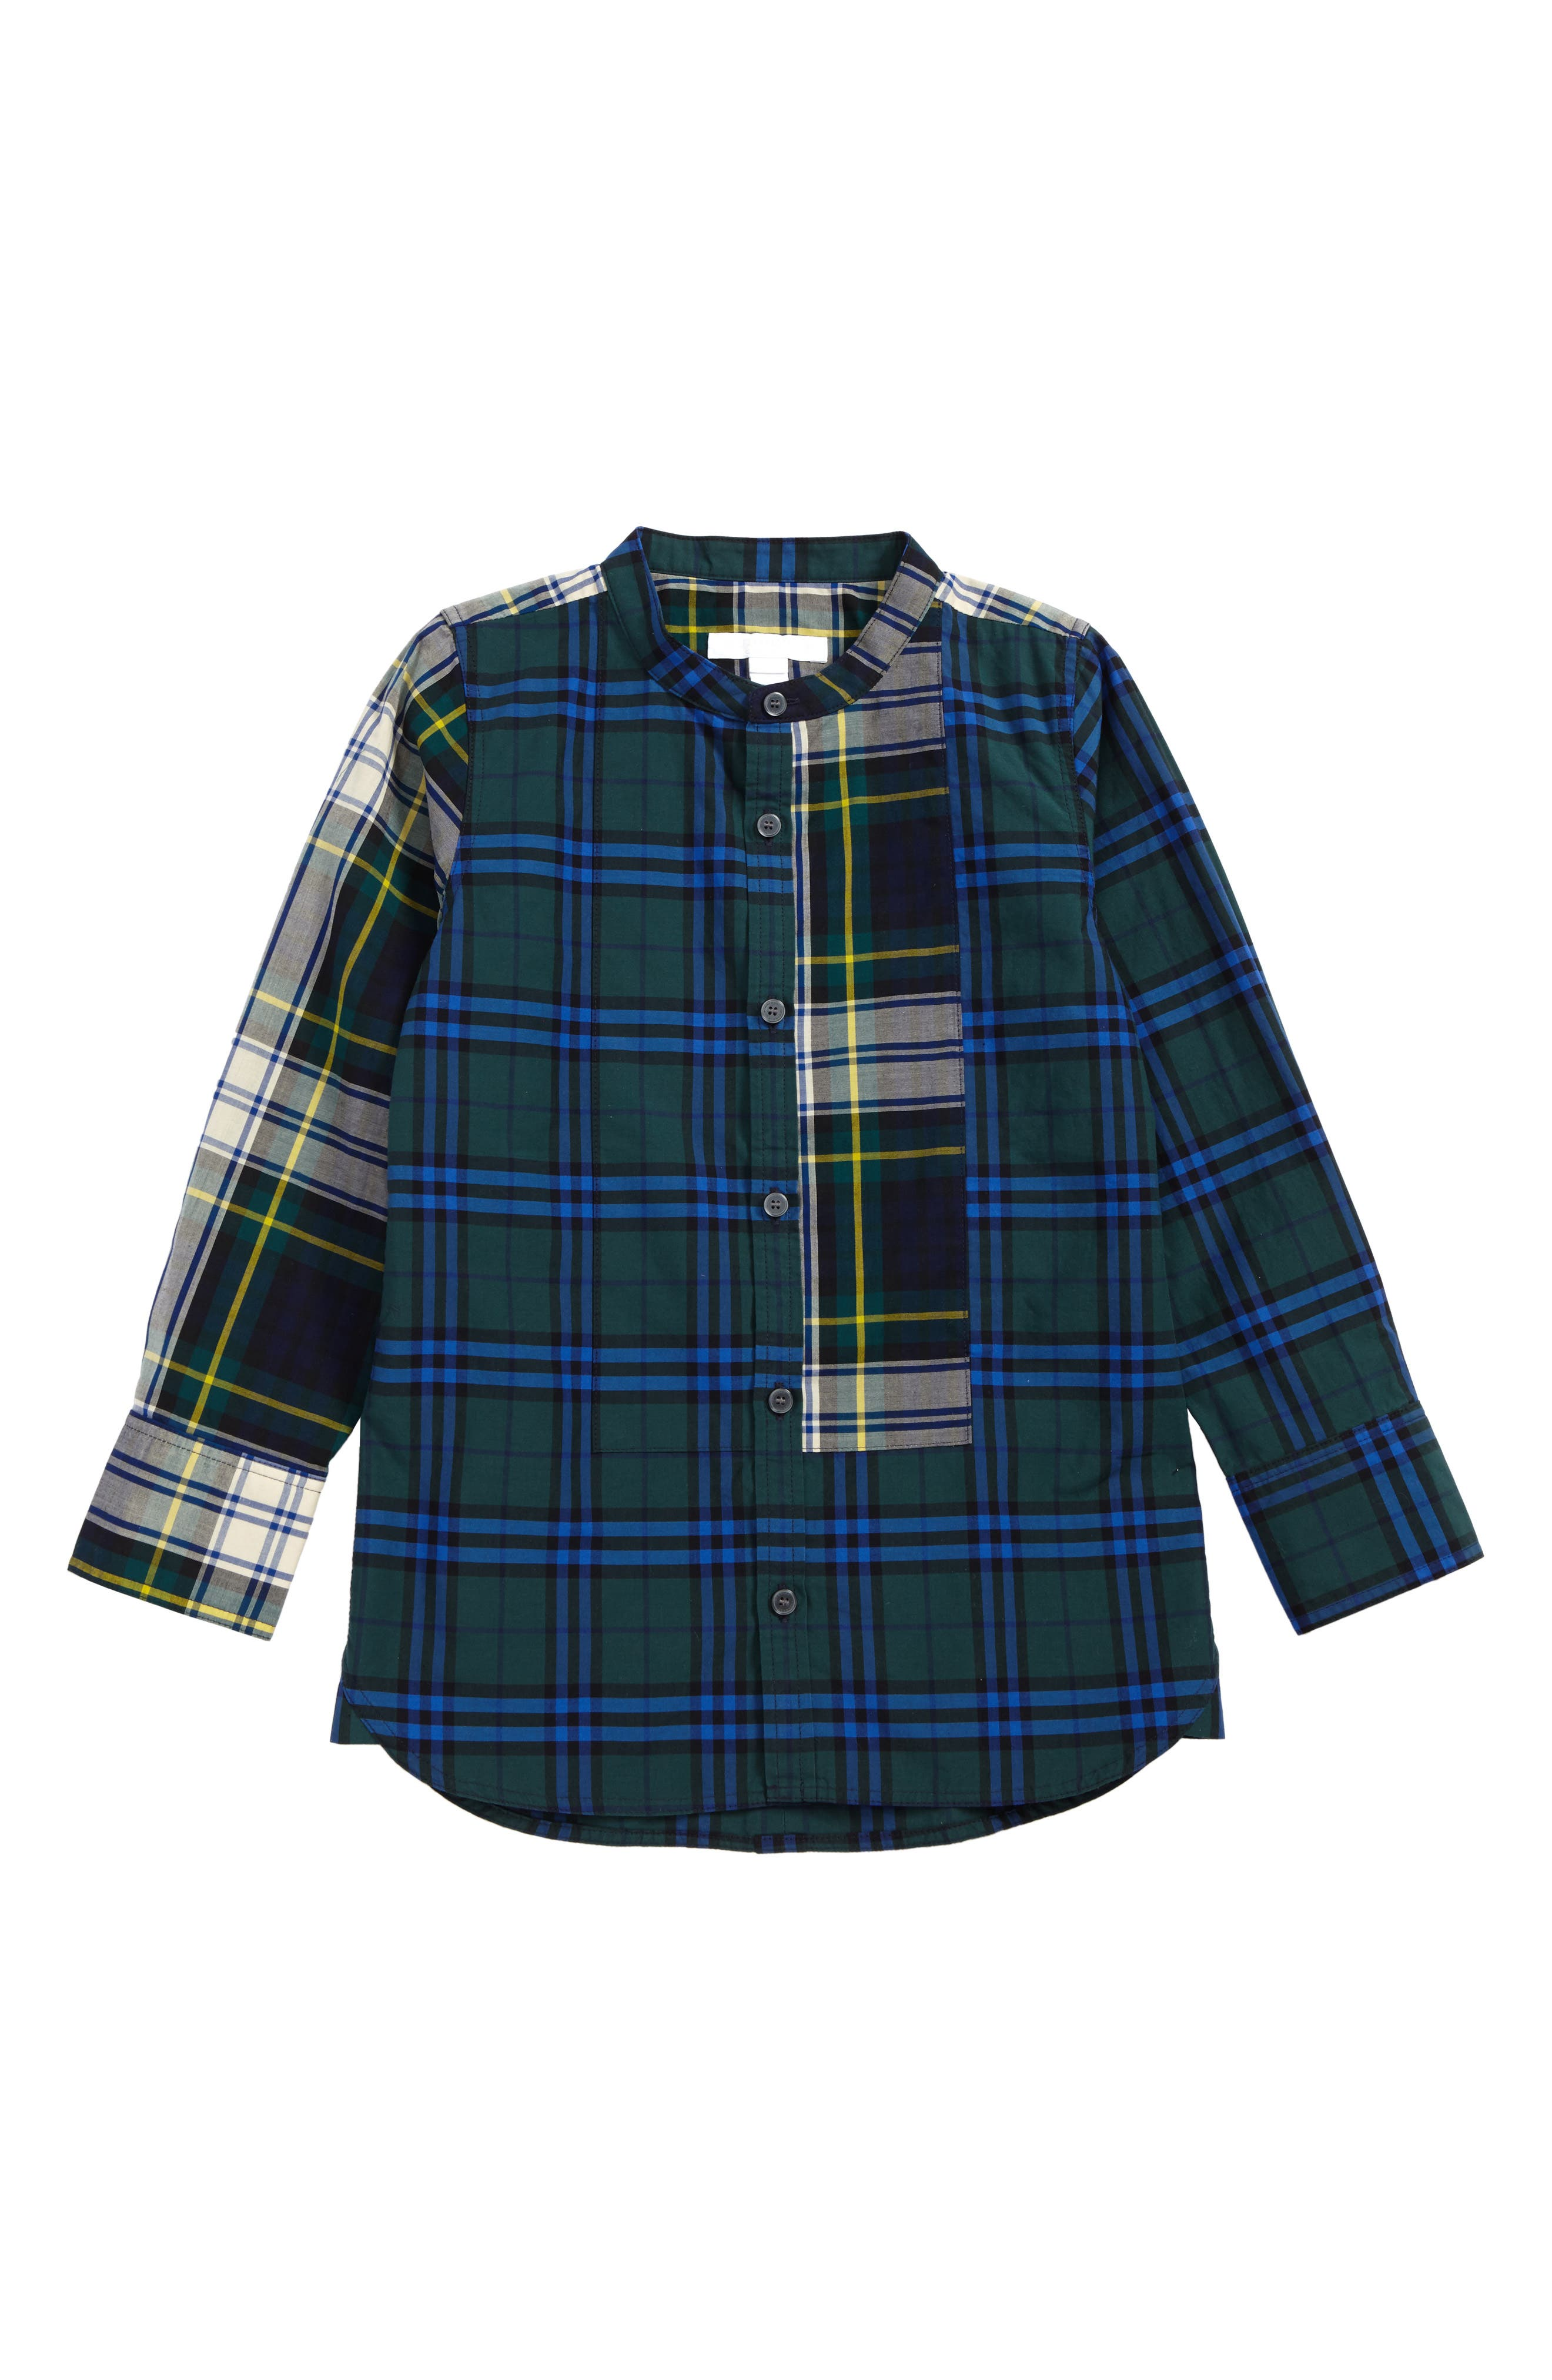 Alternate Image 1 Selected - Burberry Argus Check Print Woven Shirt (Little Boys & Big Boys)